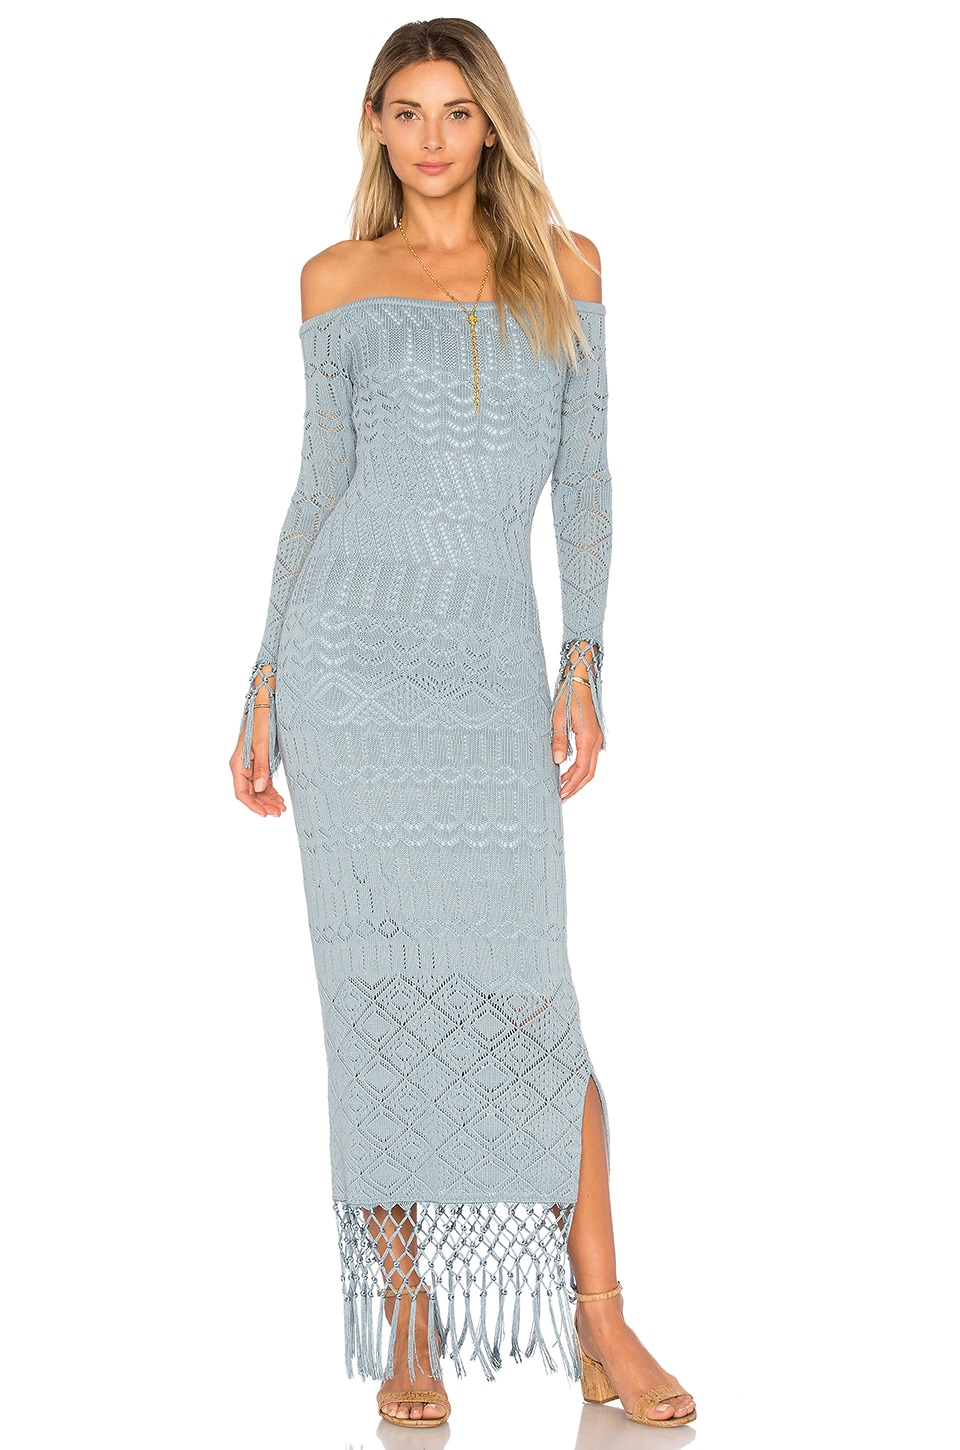 House of Harlow 1960 x REVOLVE Rose Dress in Dusty Blue